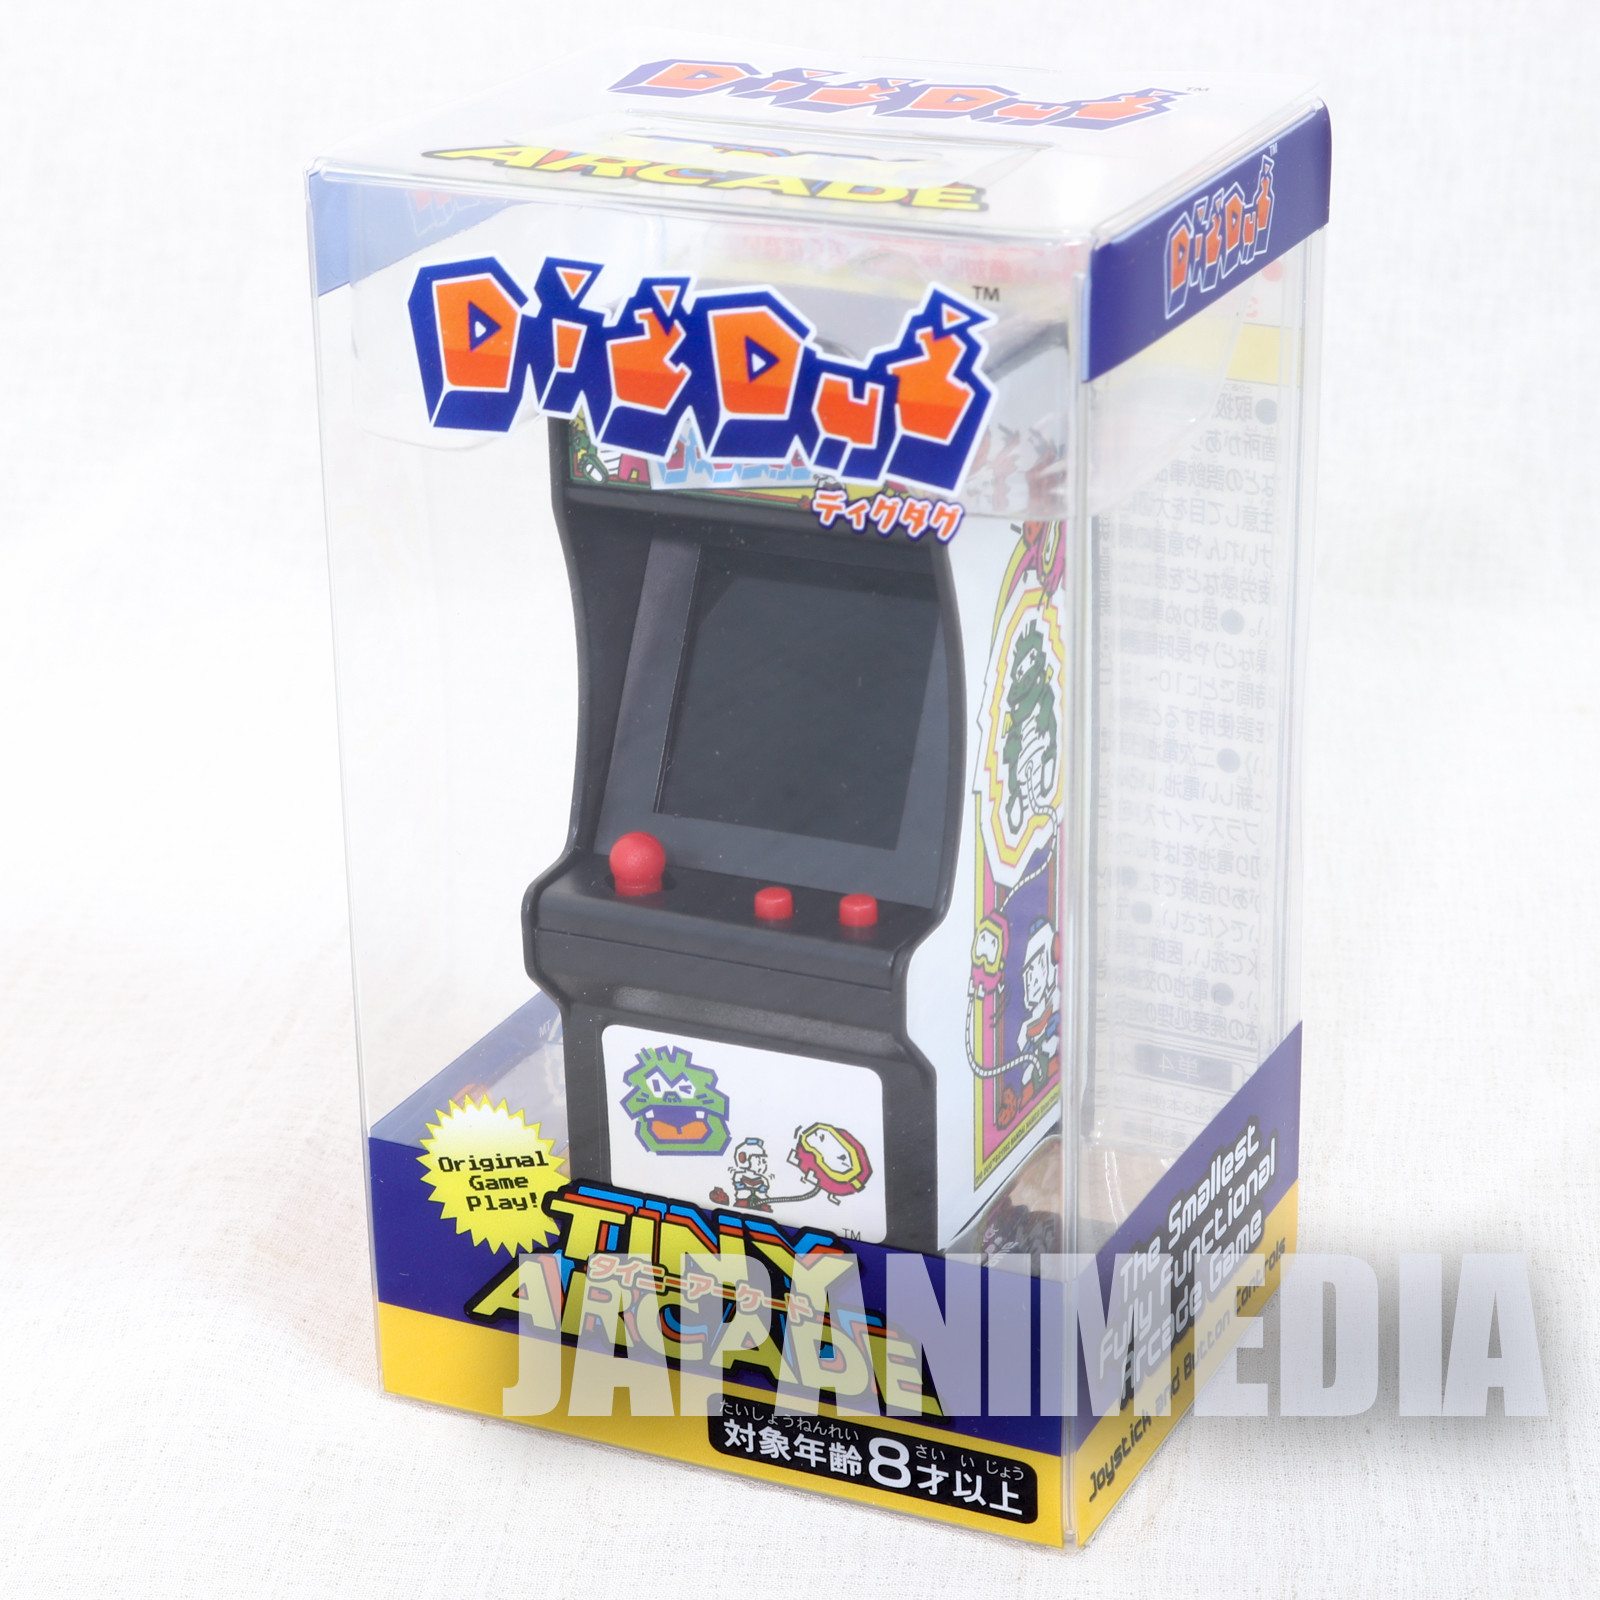 Tiny Arcade Dig Dug The Smallest Fully Functional Arcade Game Machine